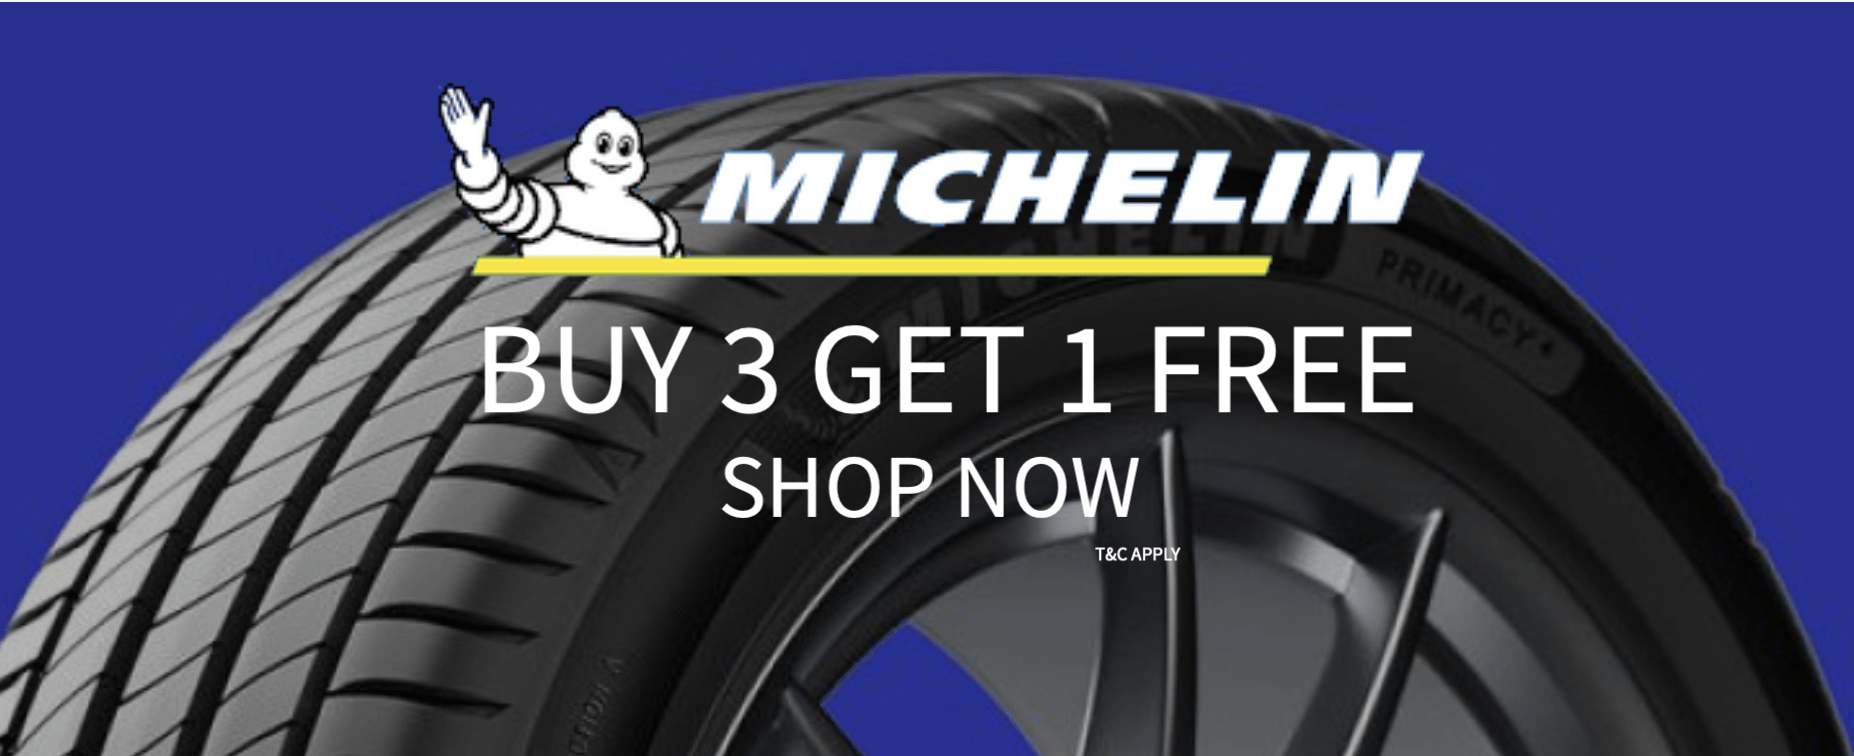 🔥🔥Book your vehicle #Tyres   #Wheels   #Service with our #NorthShore Store and Grab a deal upto 40% OFF on selected tyres and wheels🔥🔥 Valley Tyres is an #independently owned #tyre and #wheel retail shop. We stock new tyres and alloy wheels for #BMW, #Ford, #Audi, #Holden, #Nissan, #Toyota and other manufacturers including #Mazda, Hyundai, #Honda, Kia, Porsche and Mercedes Benz. We have wide range of tyres from #Michelin, #TOYO, #Continental, Yokohama, #Pirelli, Nankang, #Dunlop, #Firestone, #Kumho, #Goodride, BF Goodrich in fact any brand you prefer. Run Flat Tyres and 4×4 tyres. Our alloy wheel range includes wheels from #Advanti, #DTM, #BGW, #kudos , #forum & #nichewheels, #ROH, #Rhino and many more. Www.valleytyres.co.nz 19A Porana Road Wairau park Auckland 09 443 1243 021 TYRES 1